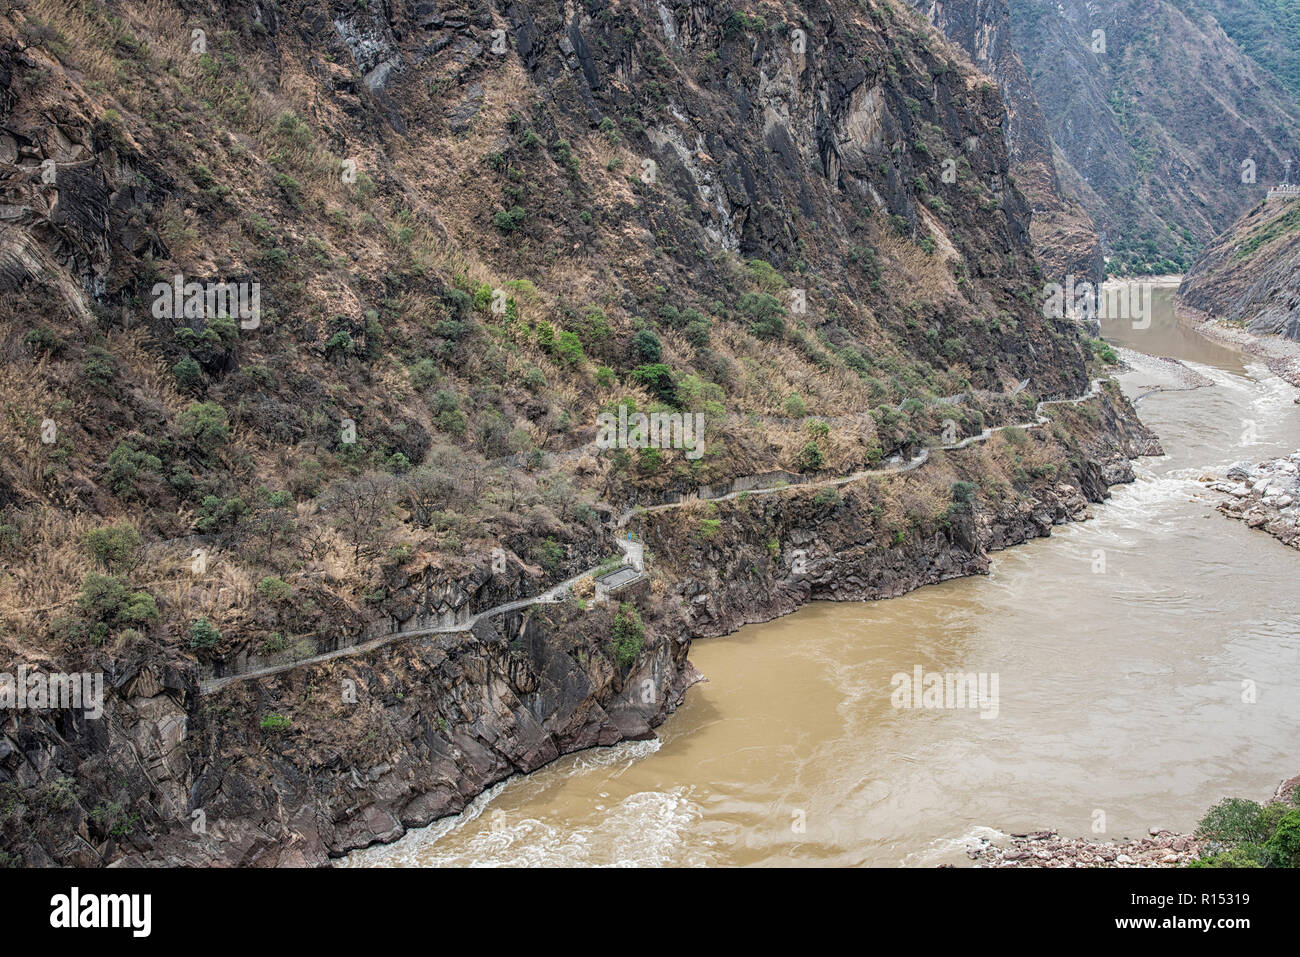 Tiger leaping gorge said to be the one of the deepest and most dramatic gorges in the World stretching for 16km long. China - Stock Image